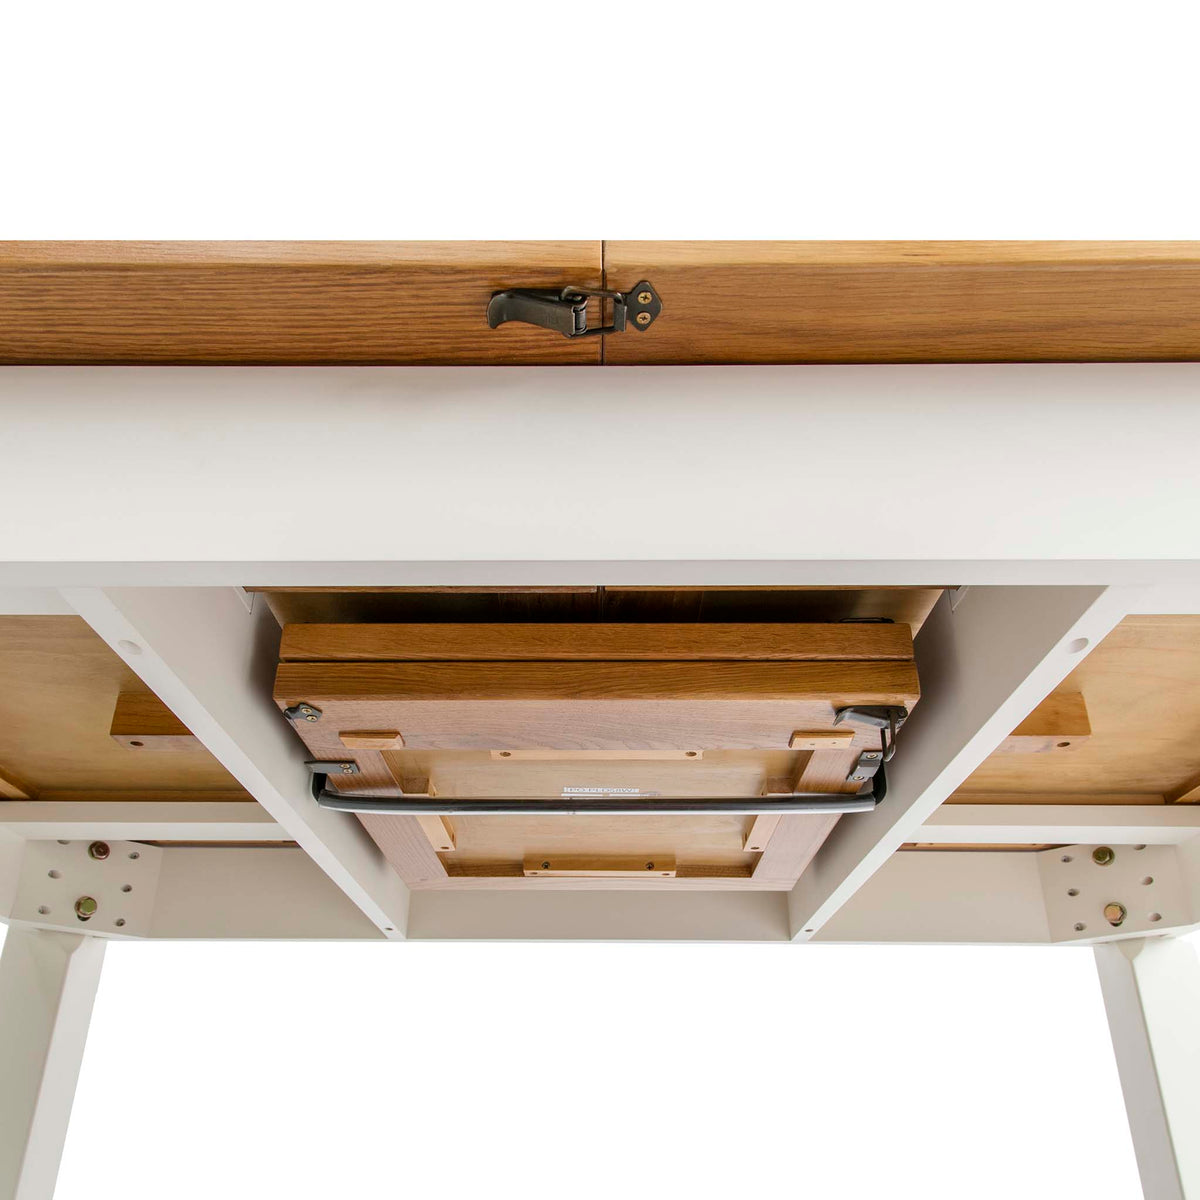 Padstow White Wooden Extending Dining Table - Close up of underside of table when closed